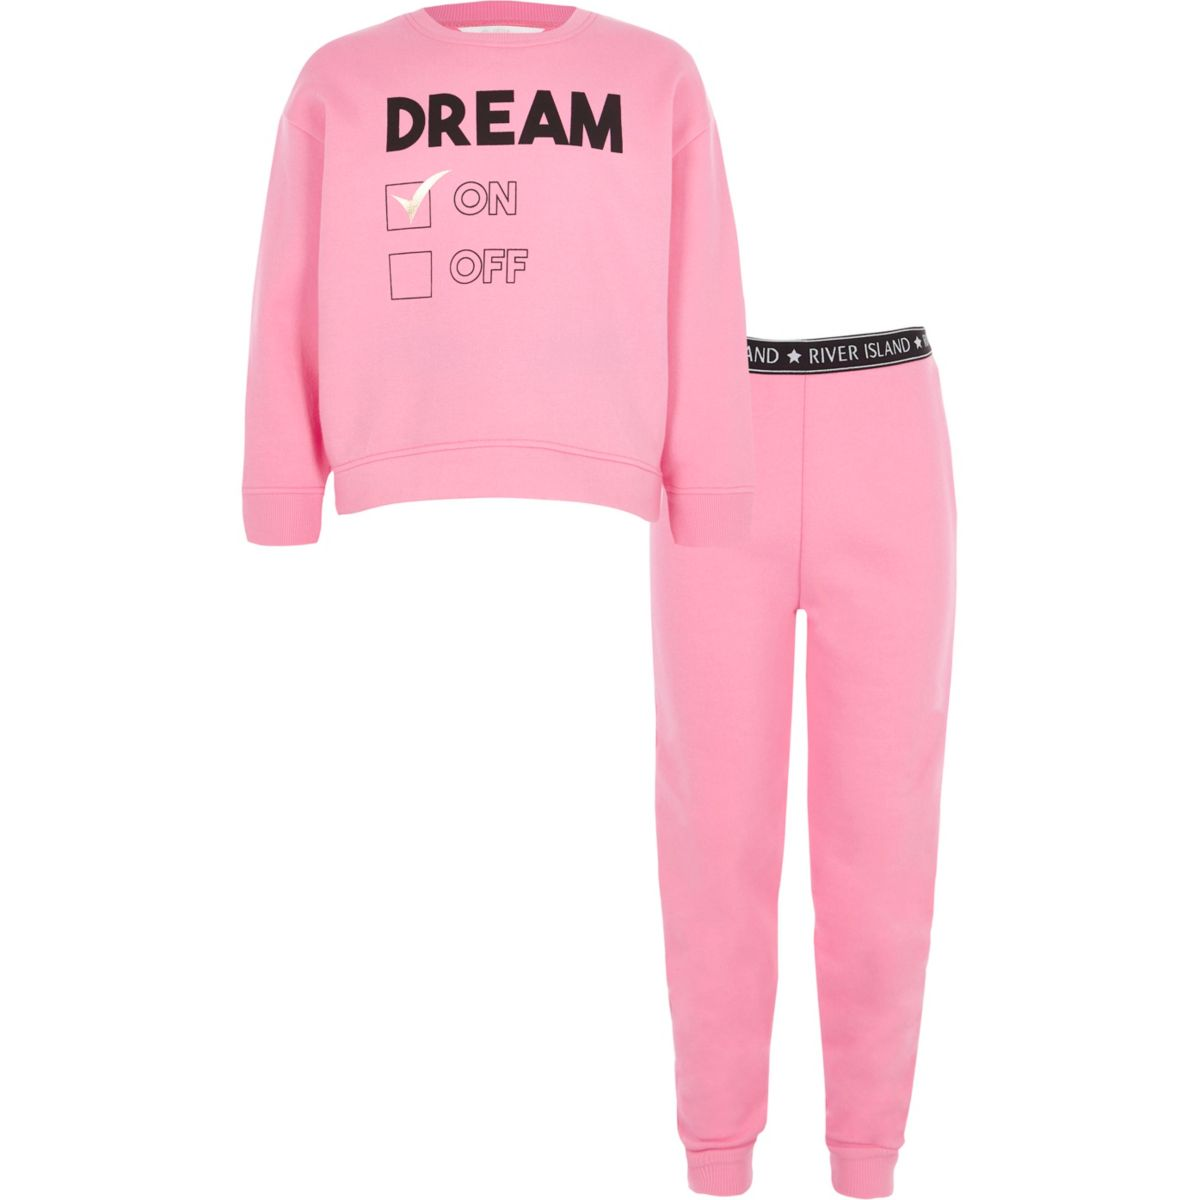 Girls pink 'dream' sweatshirt lounge outfit